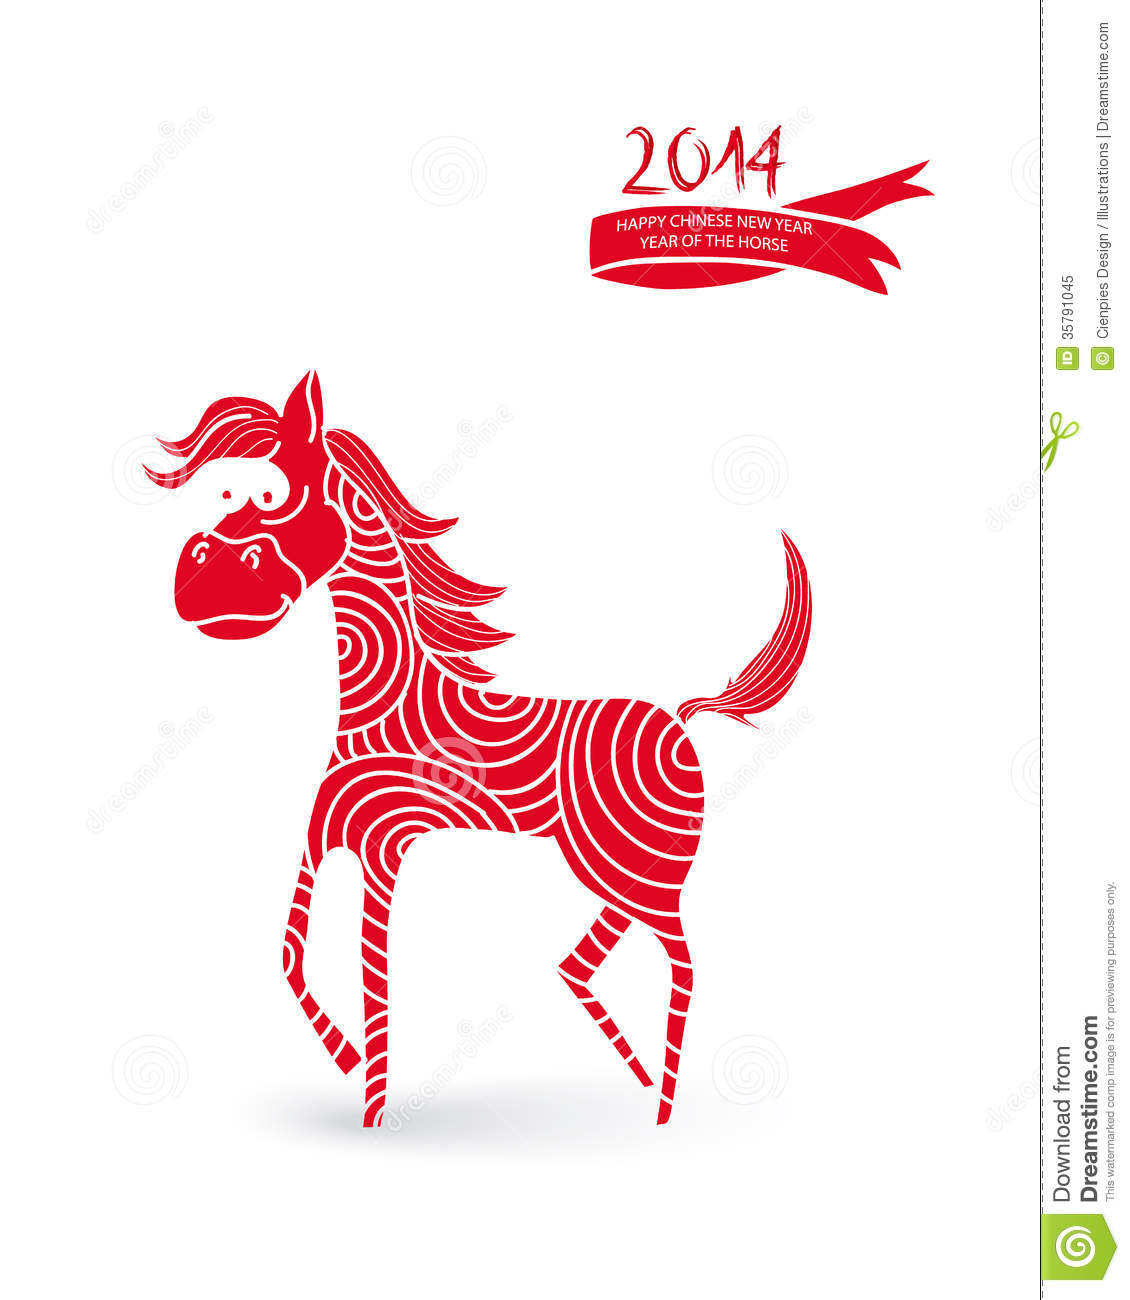 Chinese Calendar Illustration : Chinese new year cartoon horse illustration royalty free